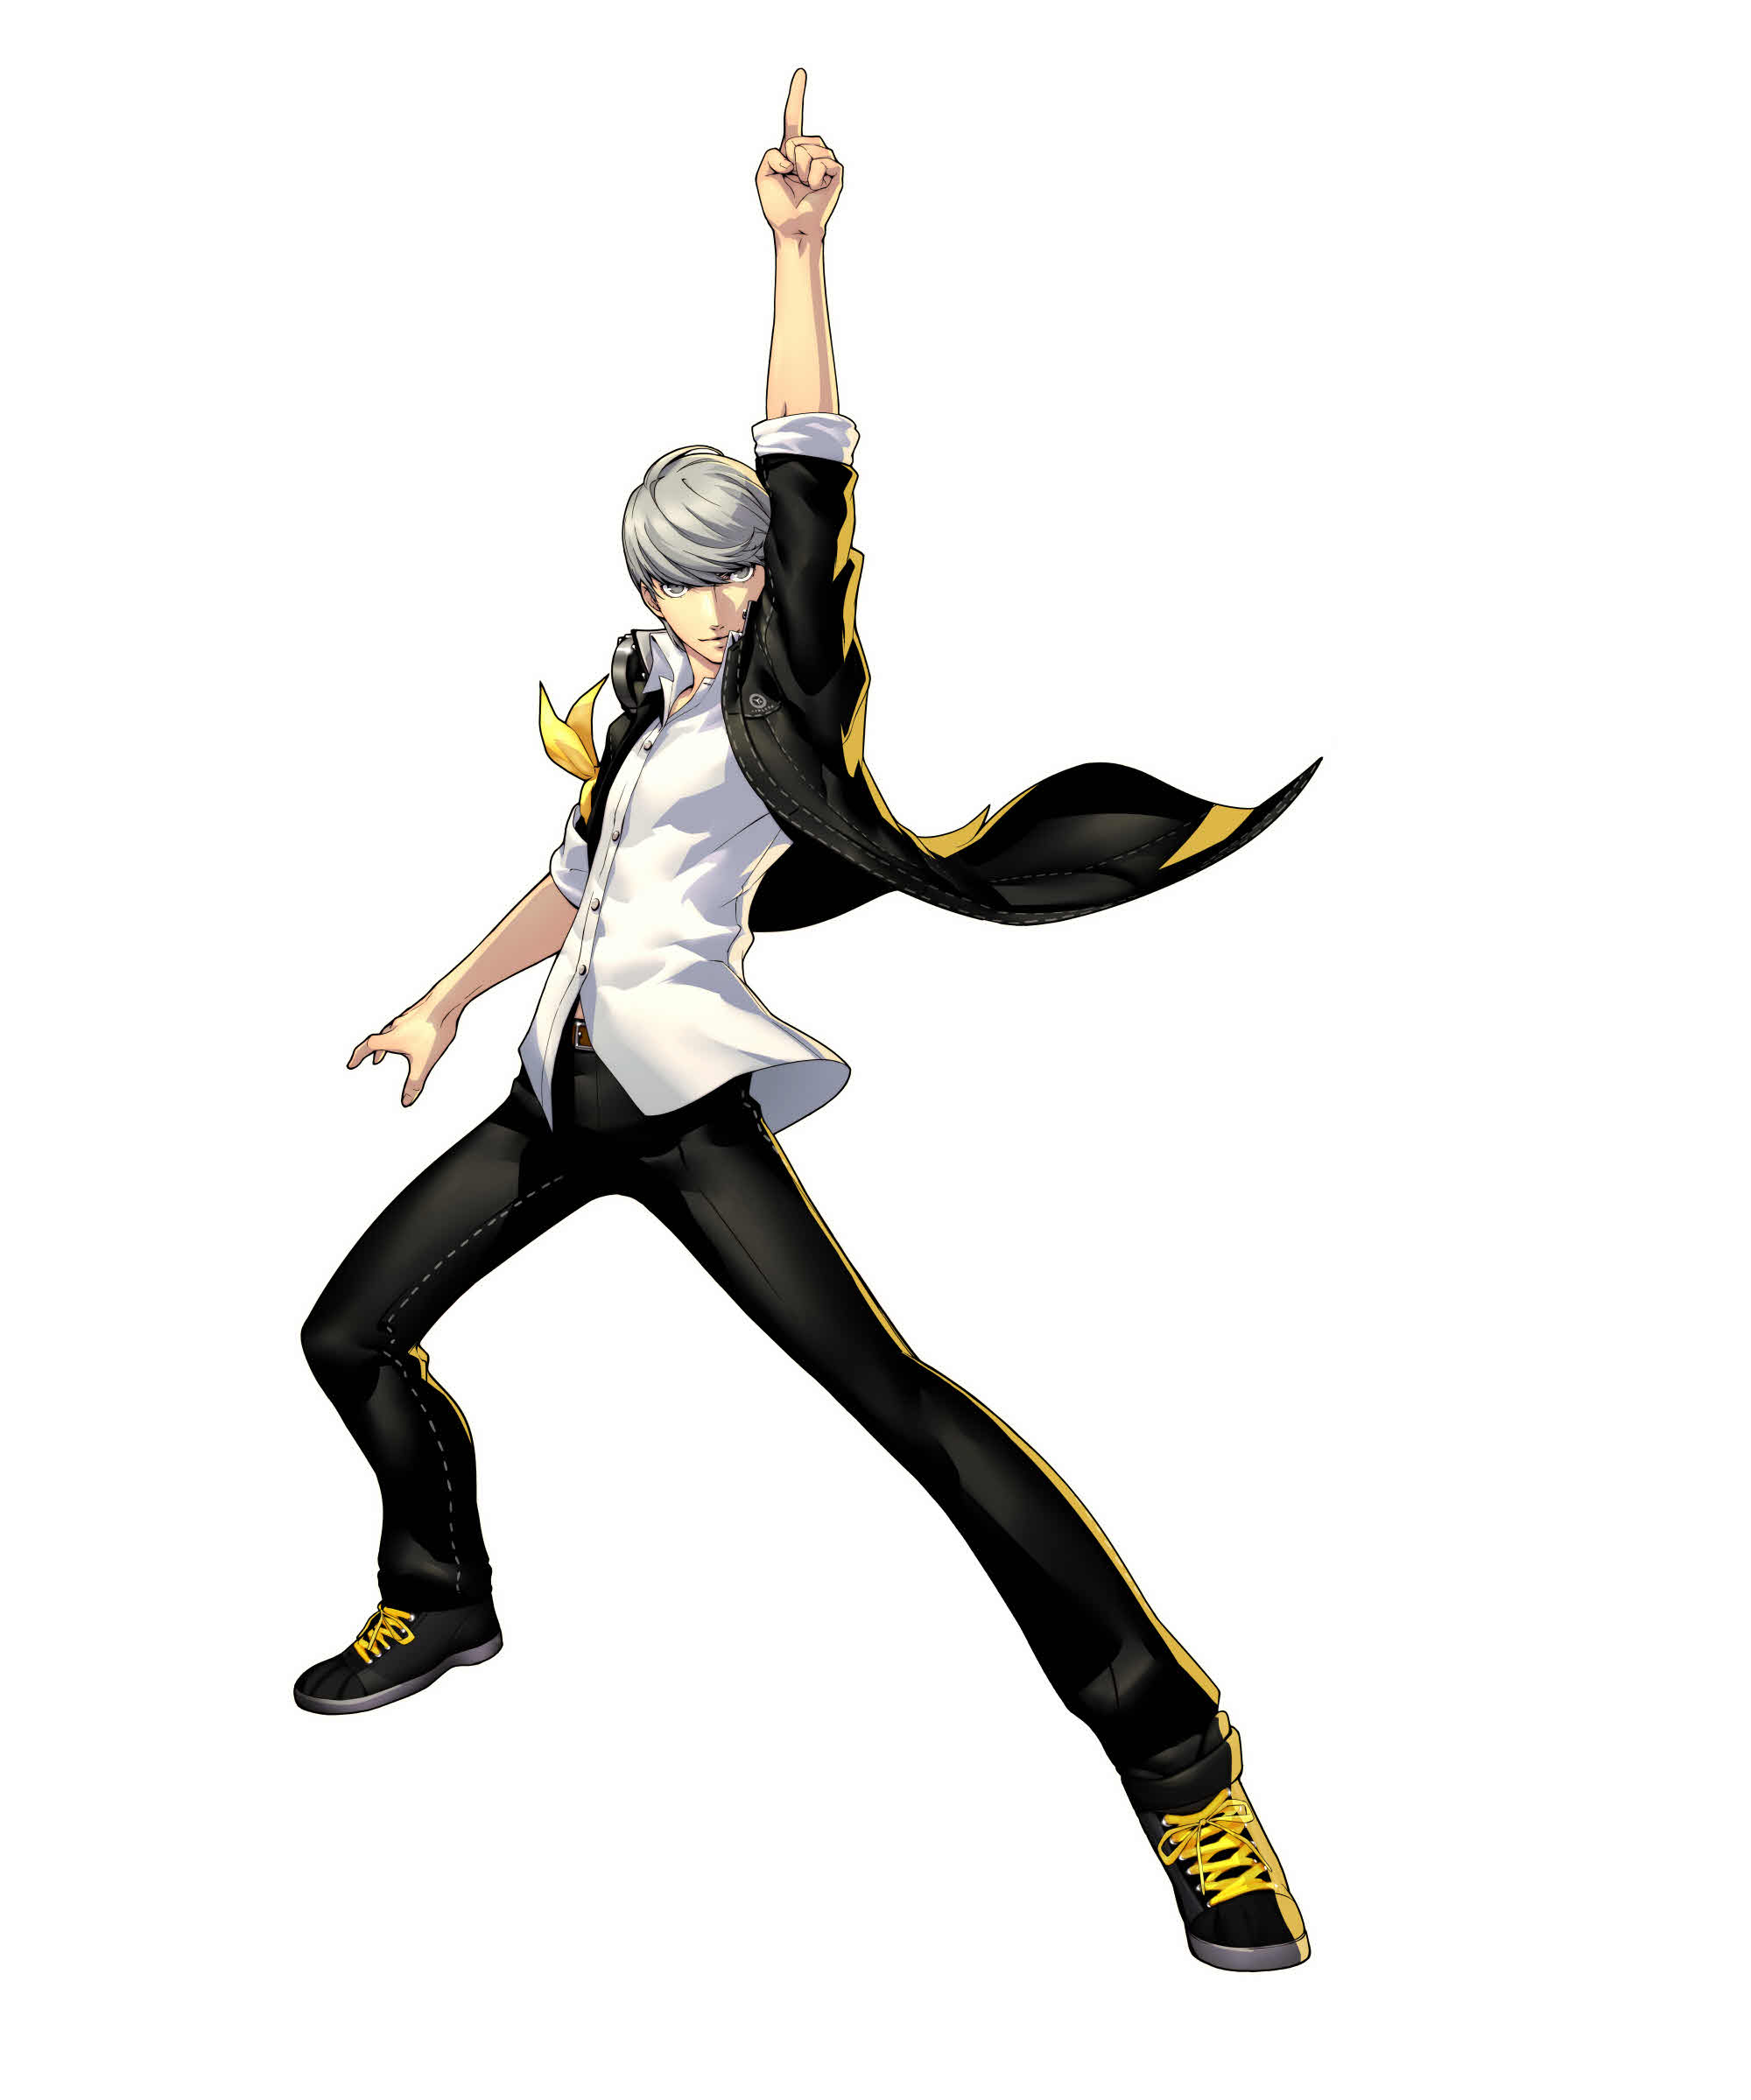 Persona 4 Dancing All Night Rpg Site